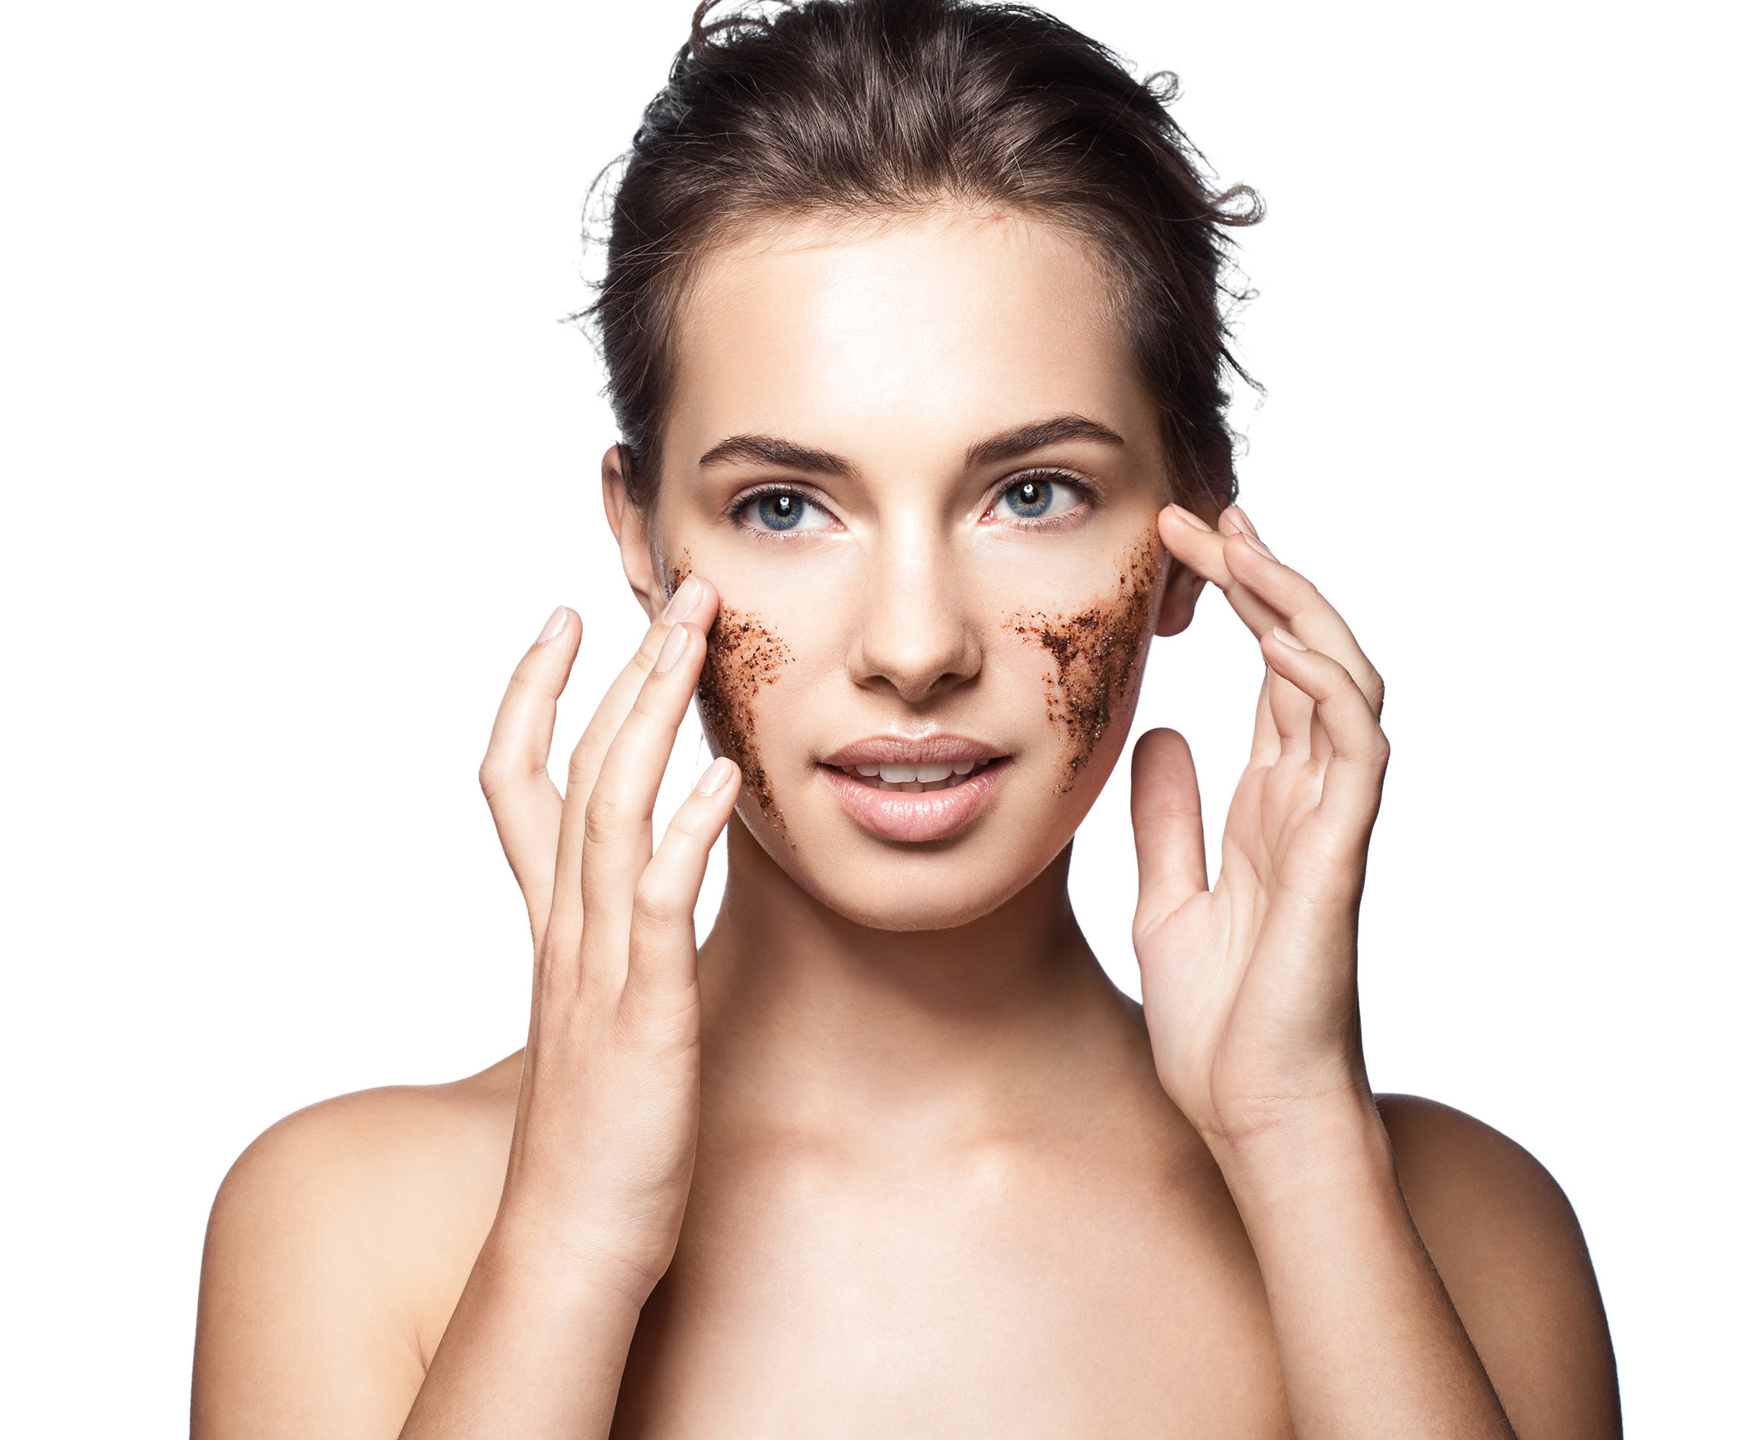 exfoliante facial casero tips y beneficios